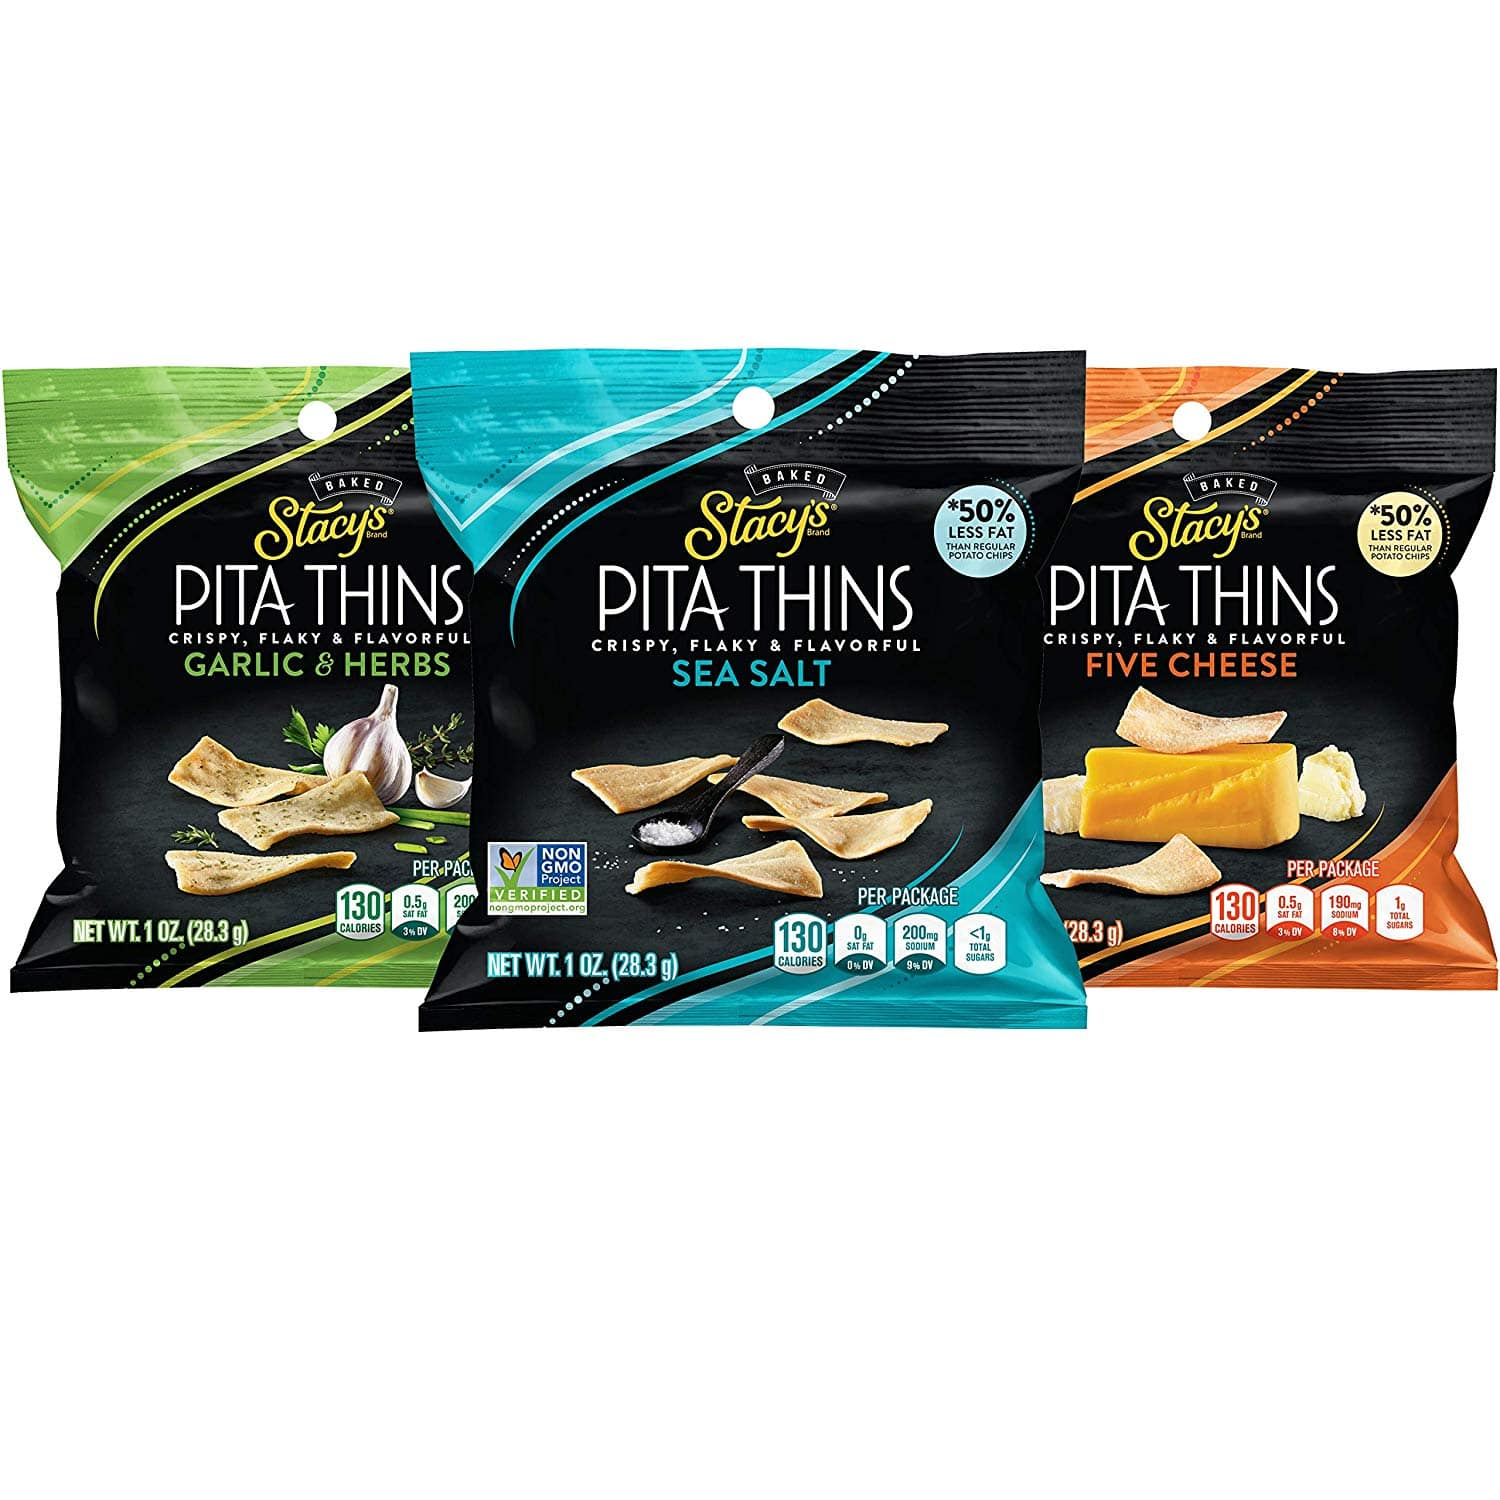 24-Ct. Stacy's Pita Thins (Variety Pack) $9.34 5% or $8.04 15% & More AC w/s&s